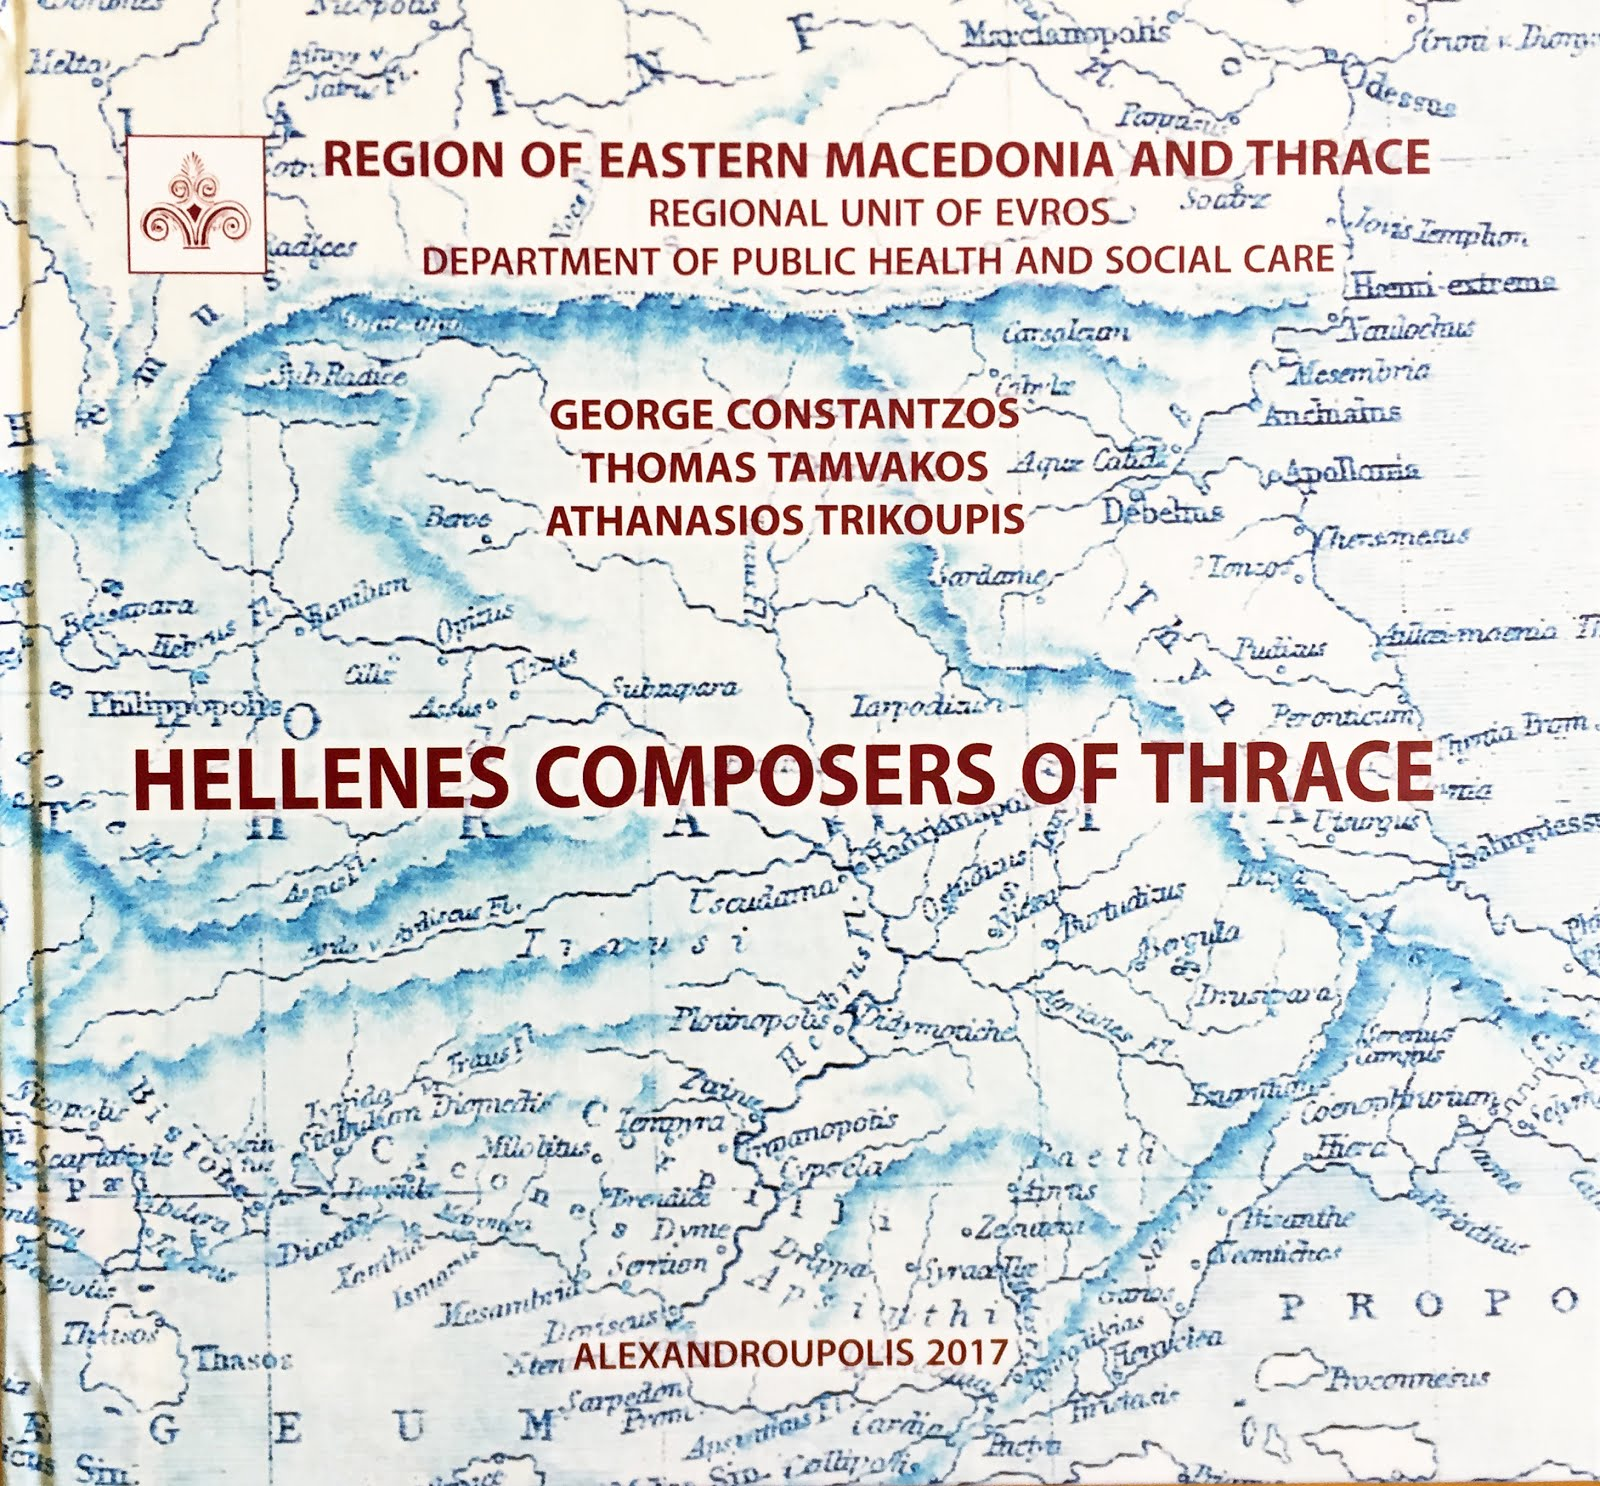 HELLENES COMPOSERS OF THRACE